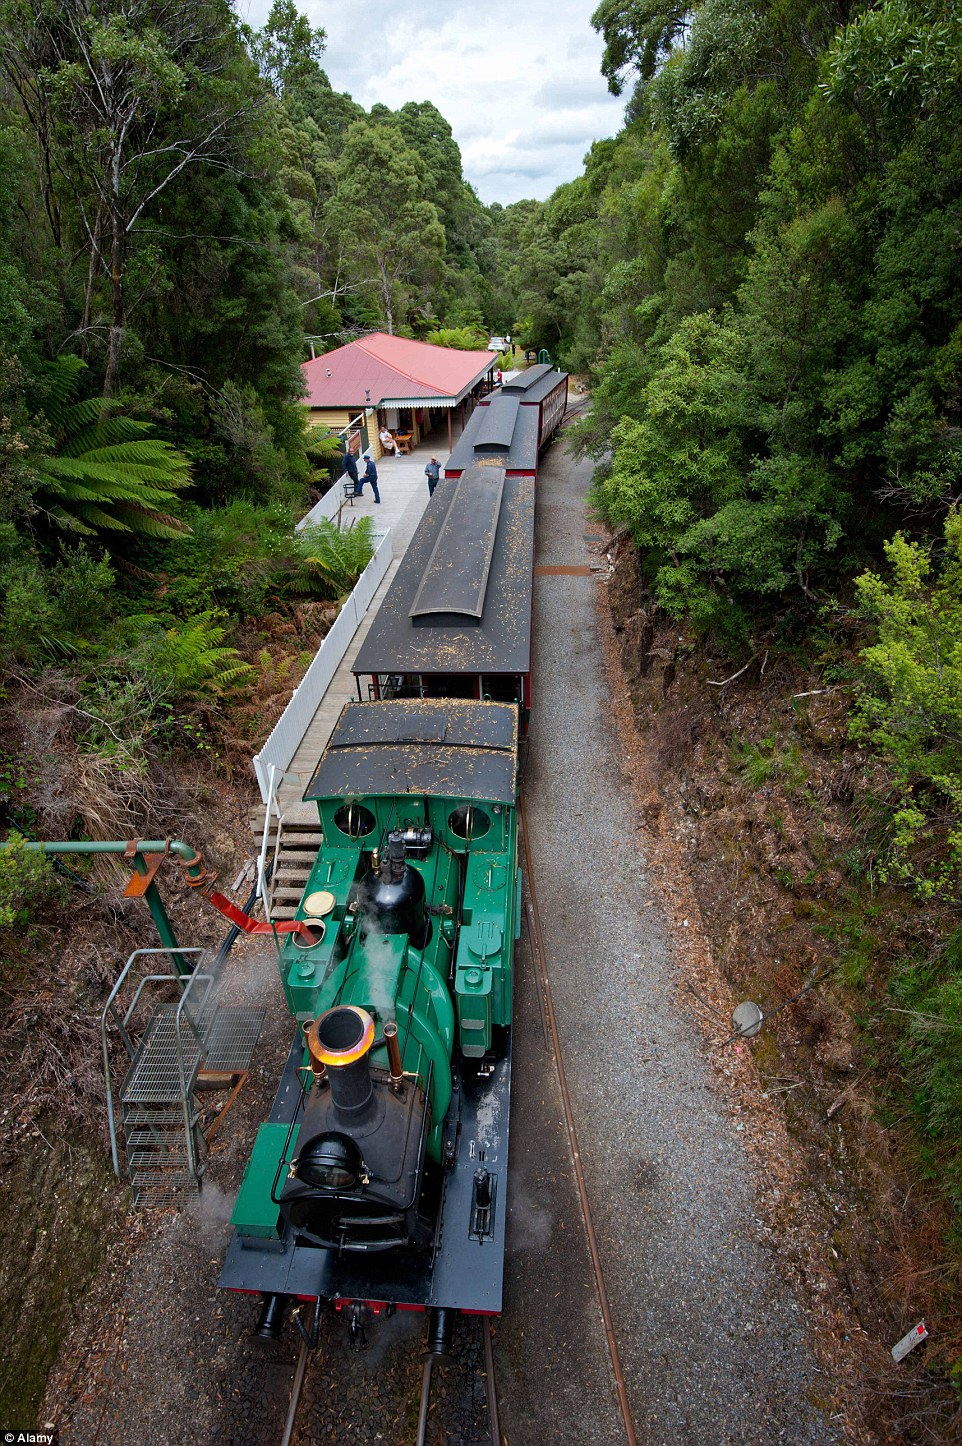 One of Tasmania's top tourist destinations is the world's steepest railway - the west coast wilderness railway